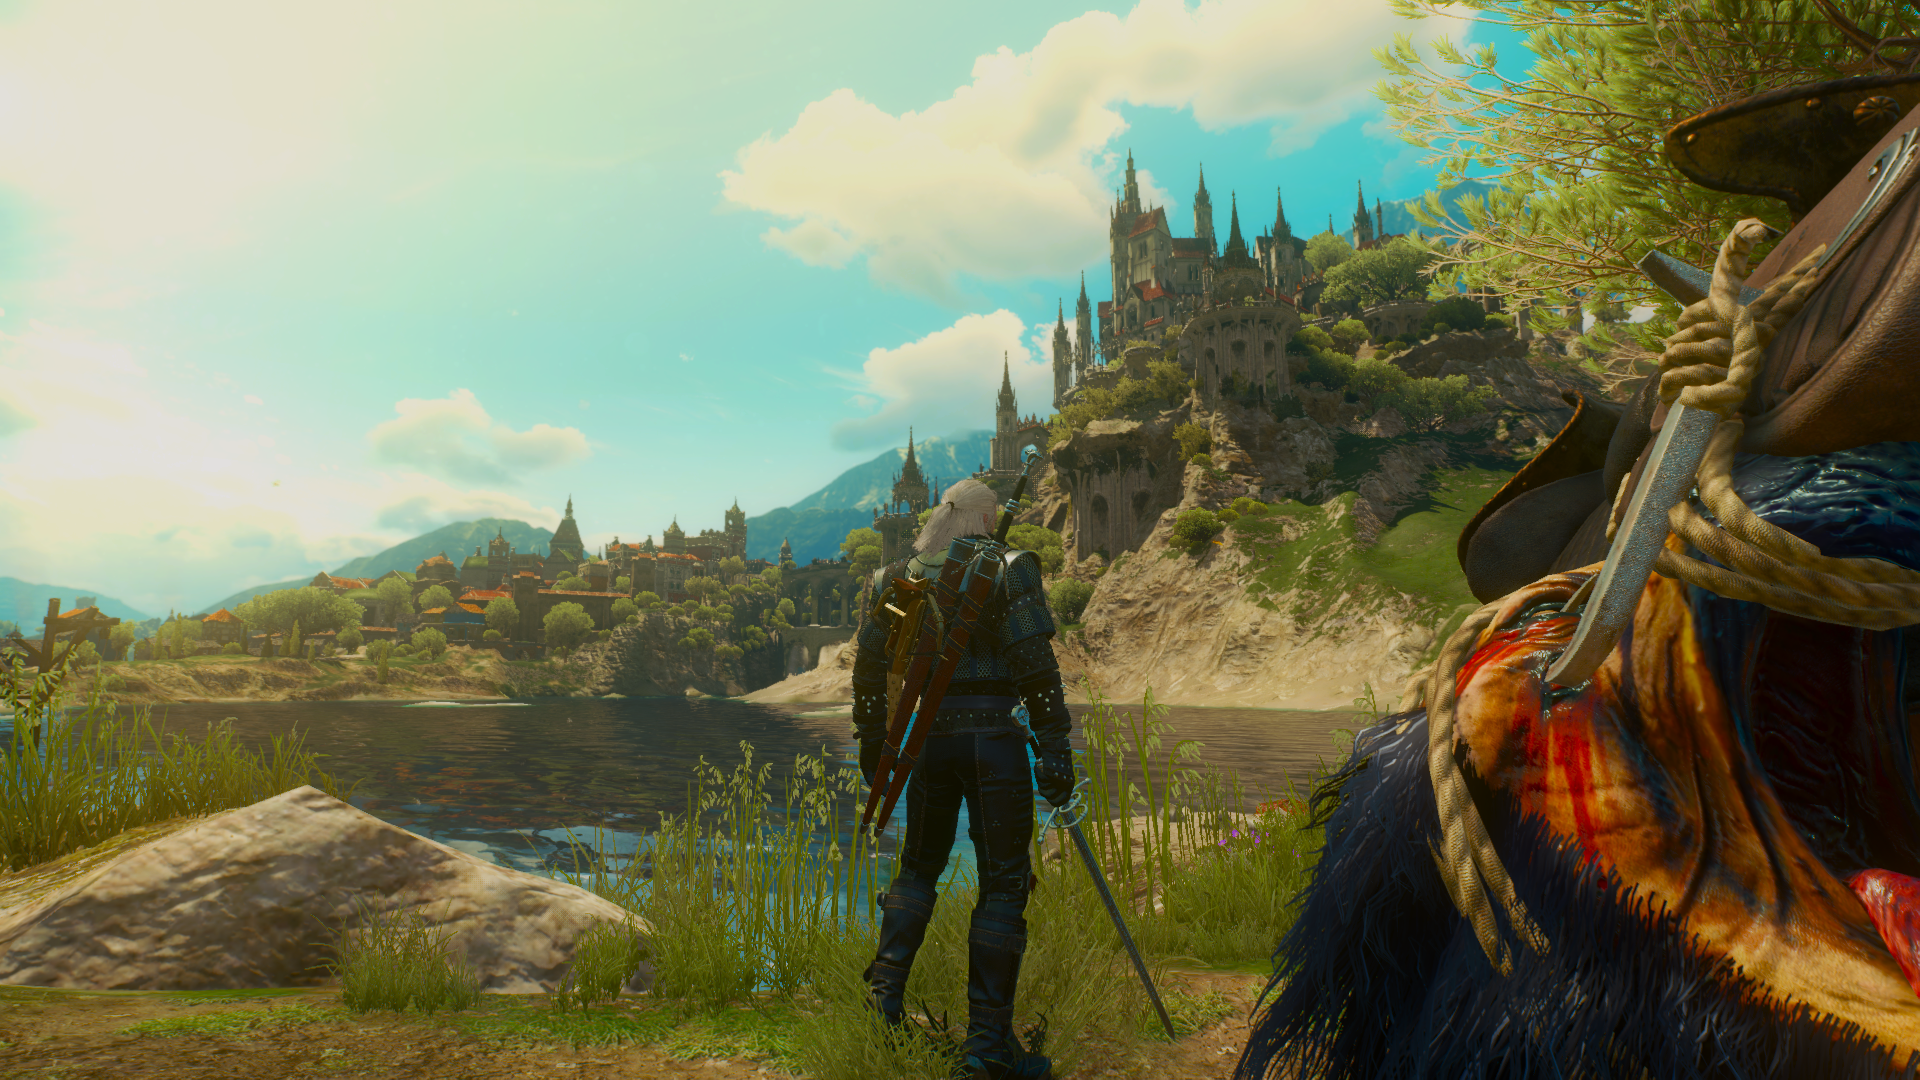 Wallpaper The Witcher 3 Wild Hunt Geralt Of Rivia Cd Project